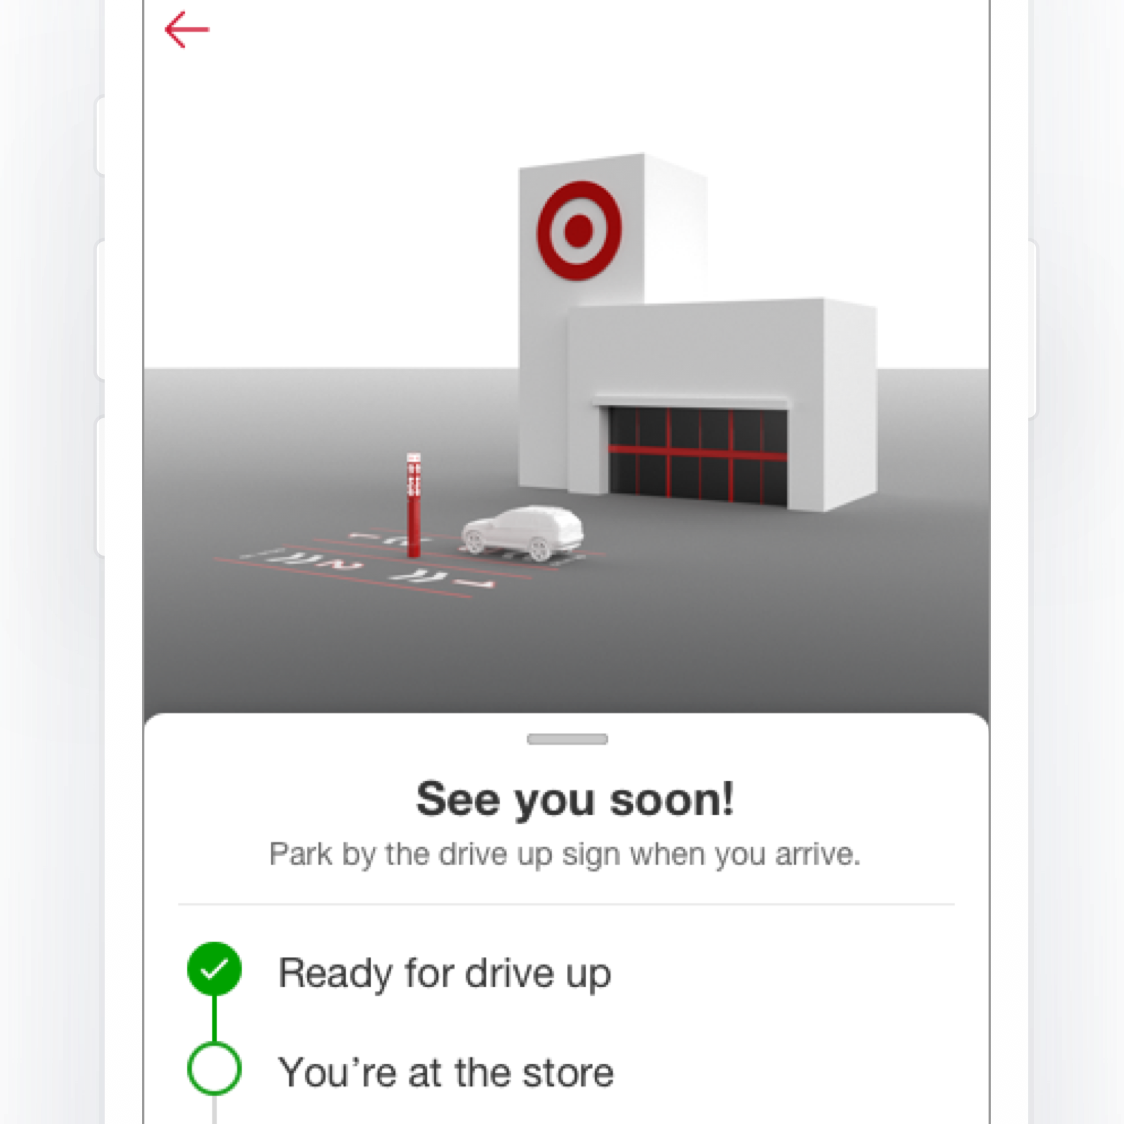 Target Drive Up is available at more than 1,100 stores. With it place an order on the app and select items will be available to pickup without getting out of the car.